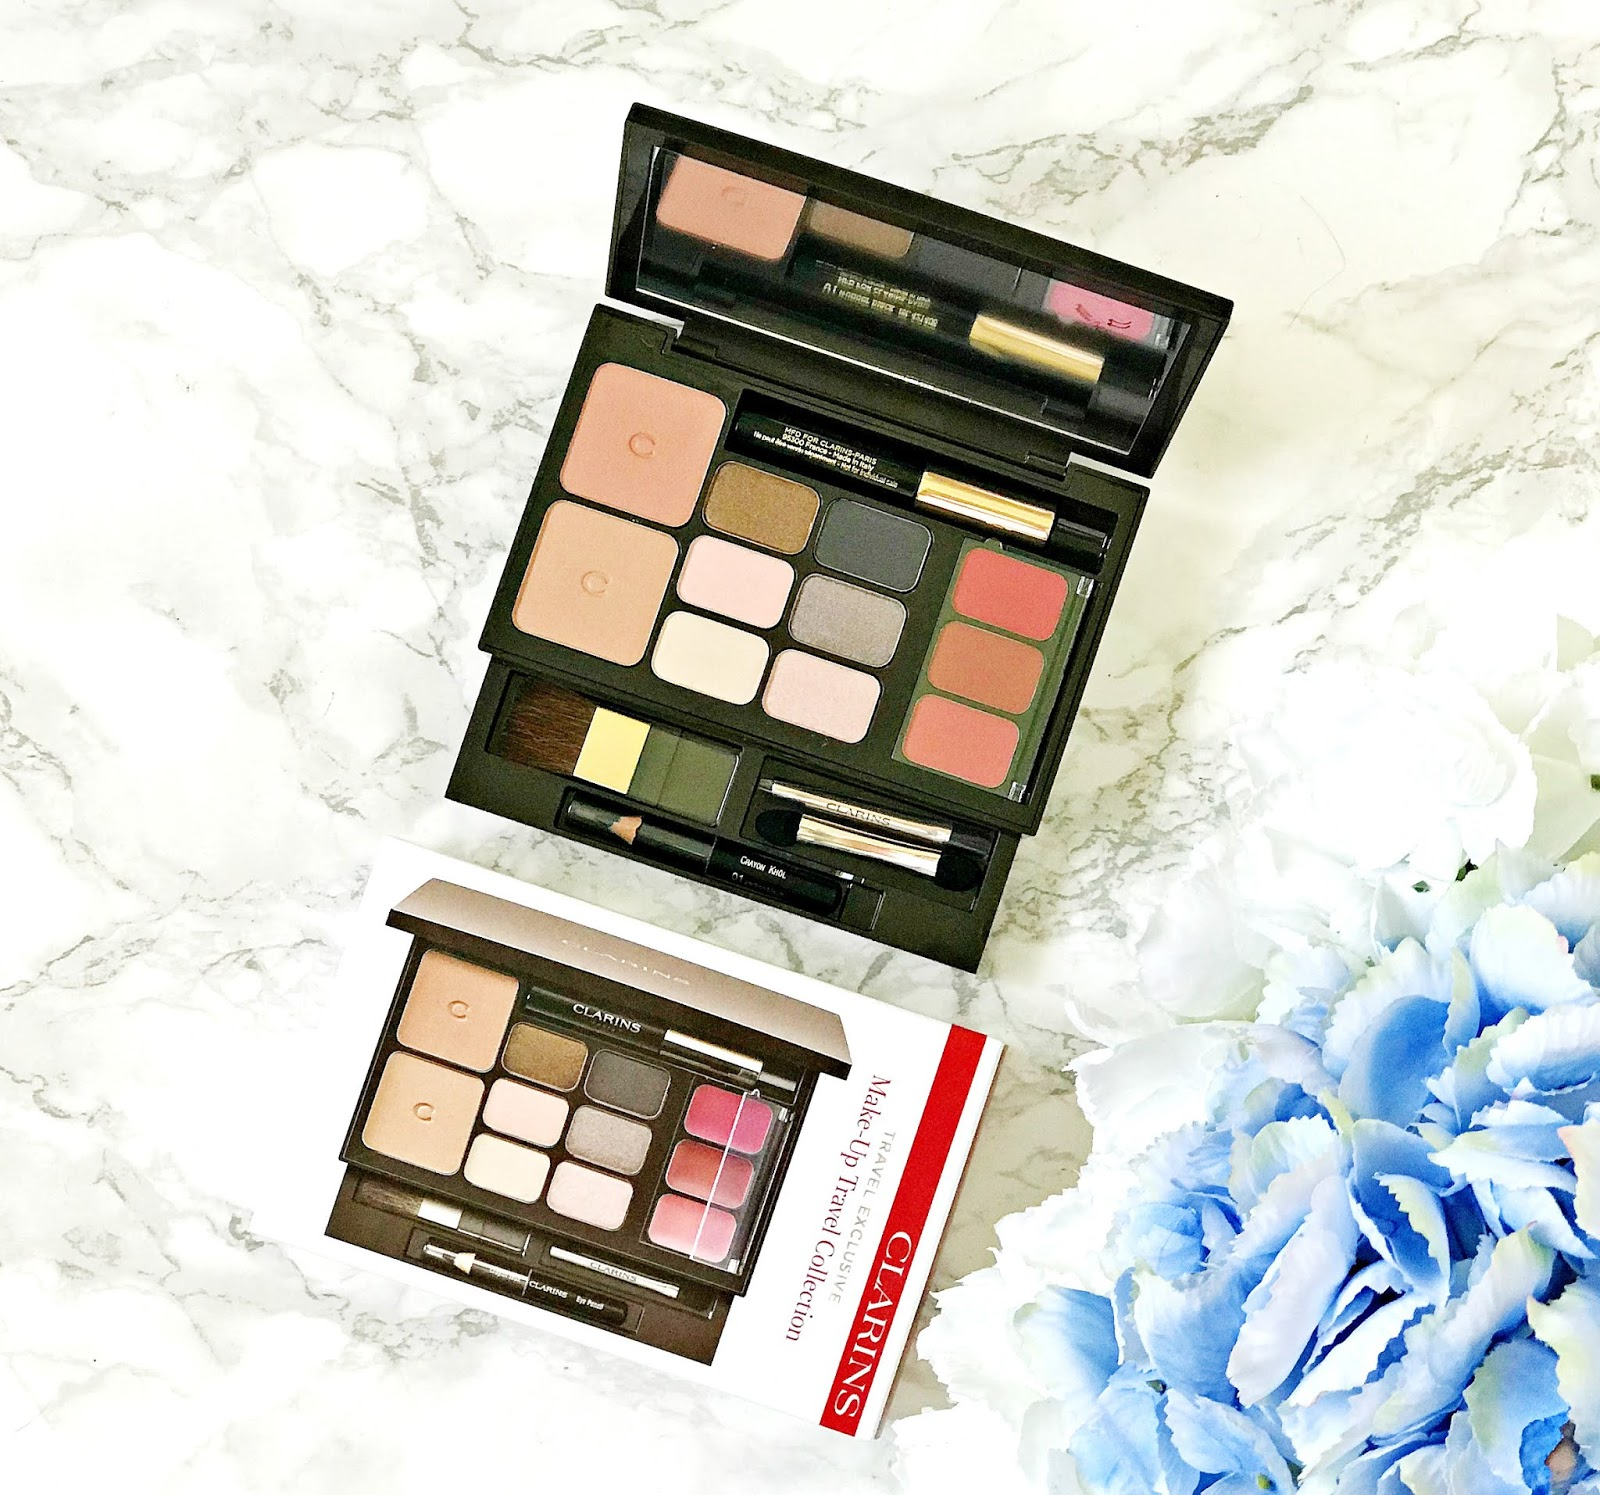 Clarins Travel Essentials Palette Review, Duty Free Exclusive